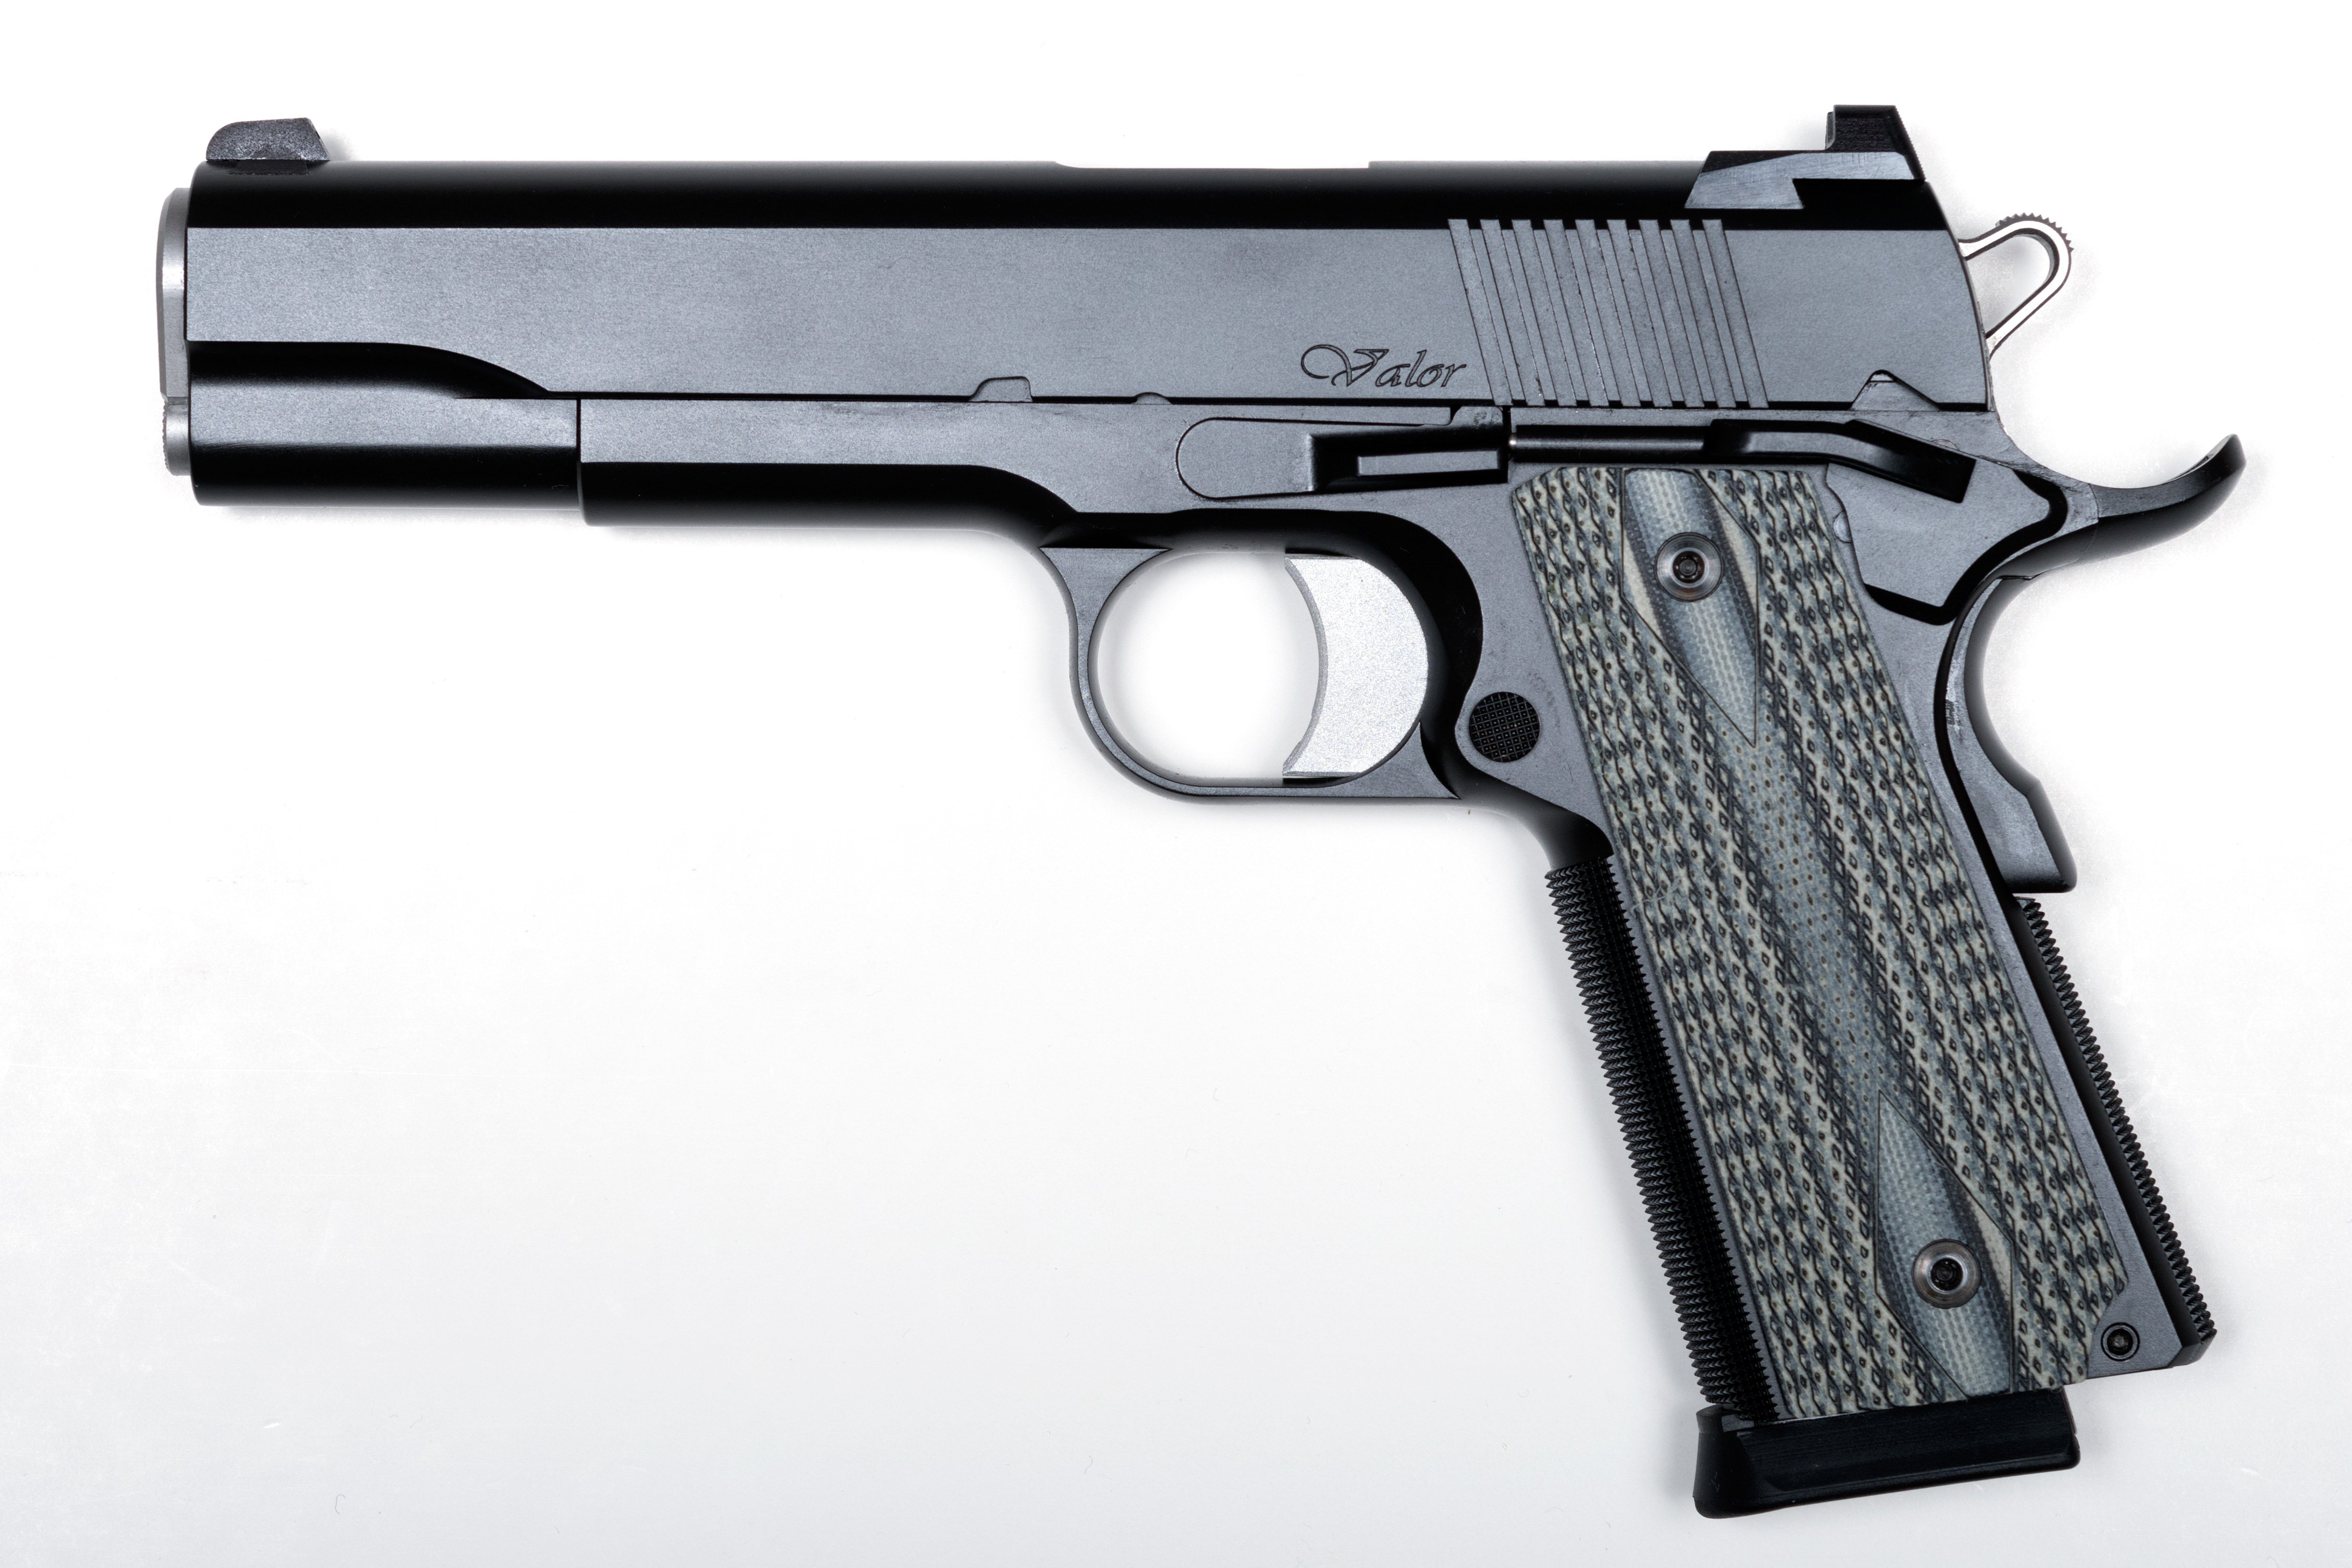 DAN WESSON VALOR .45ACP